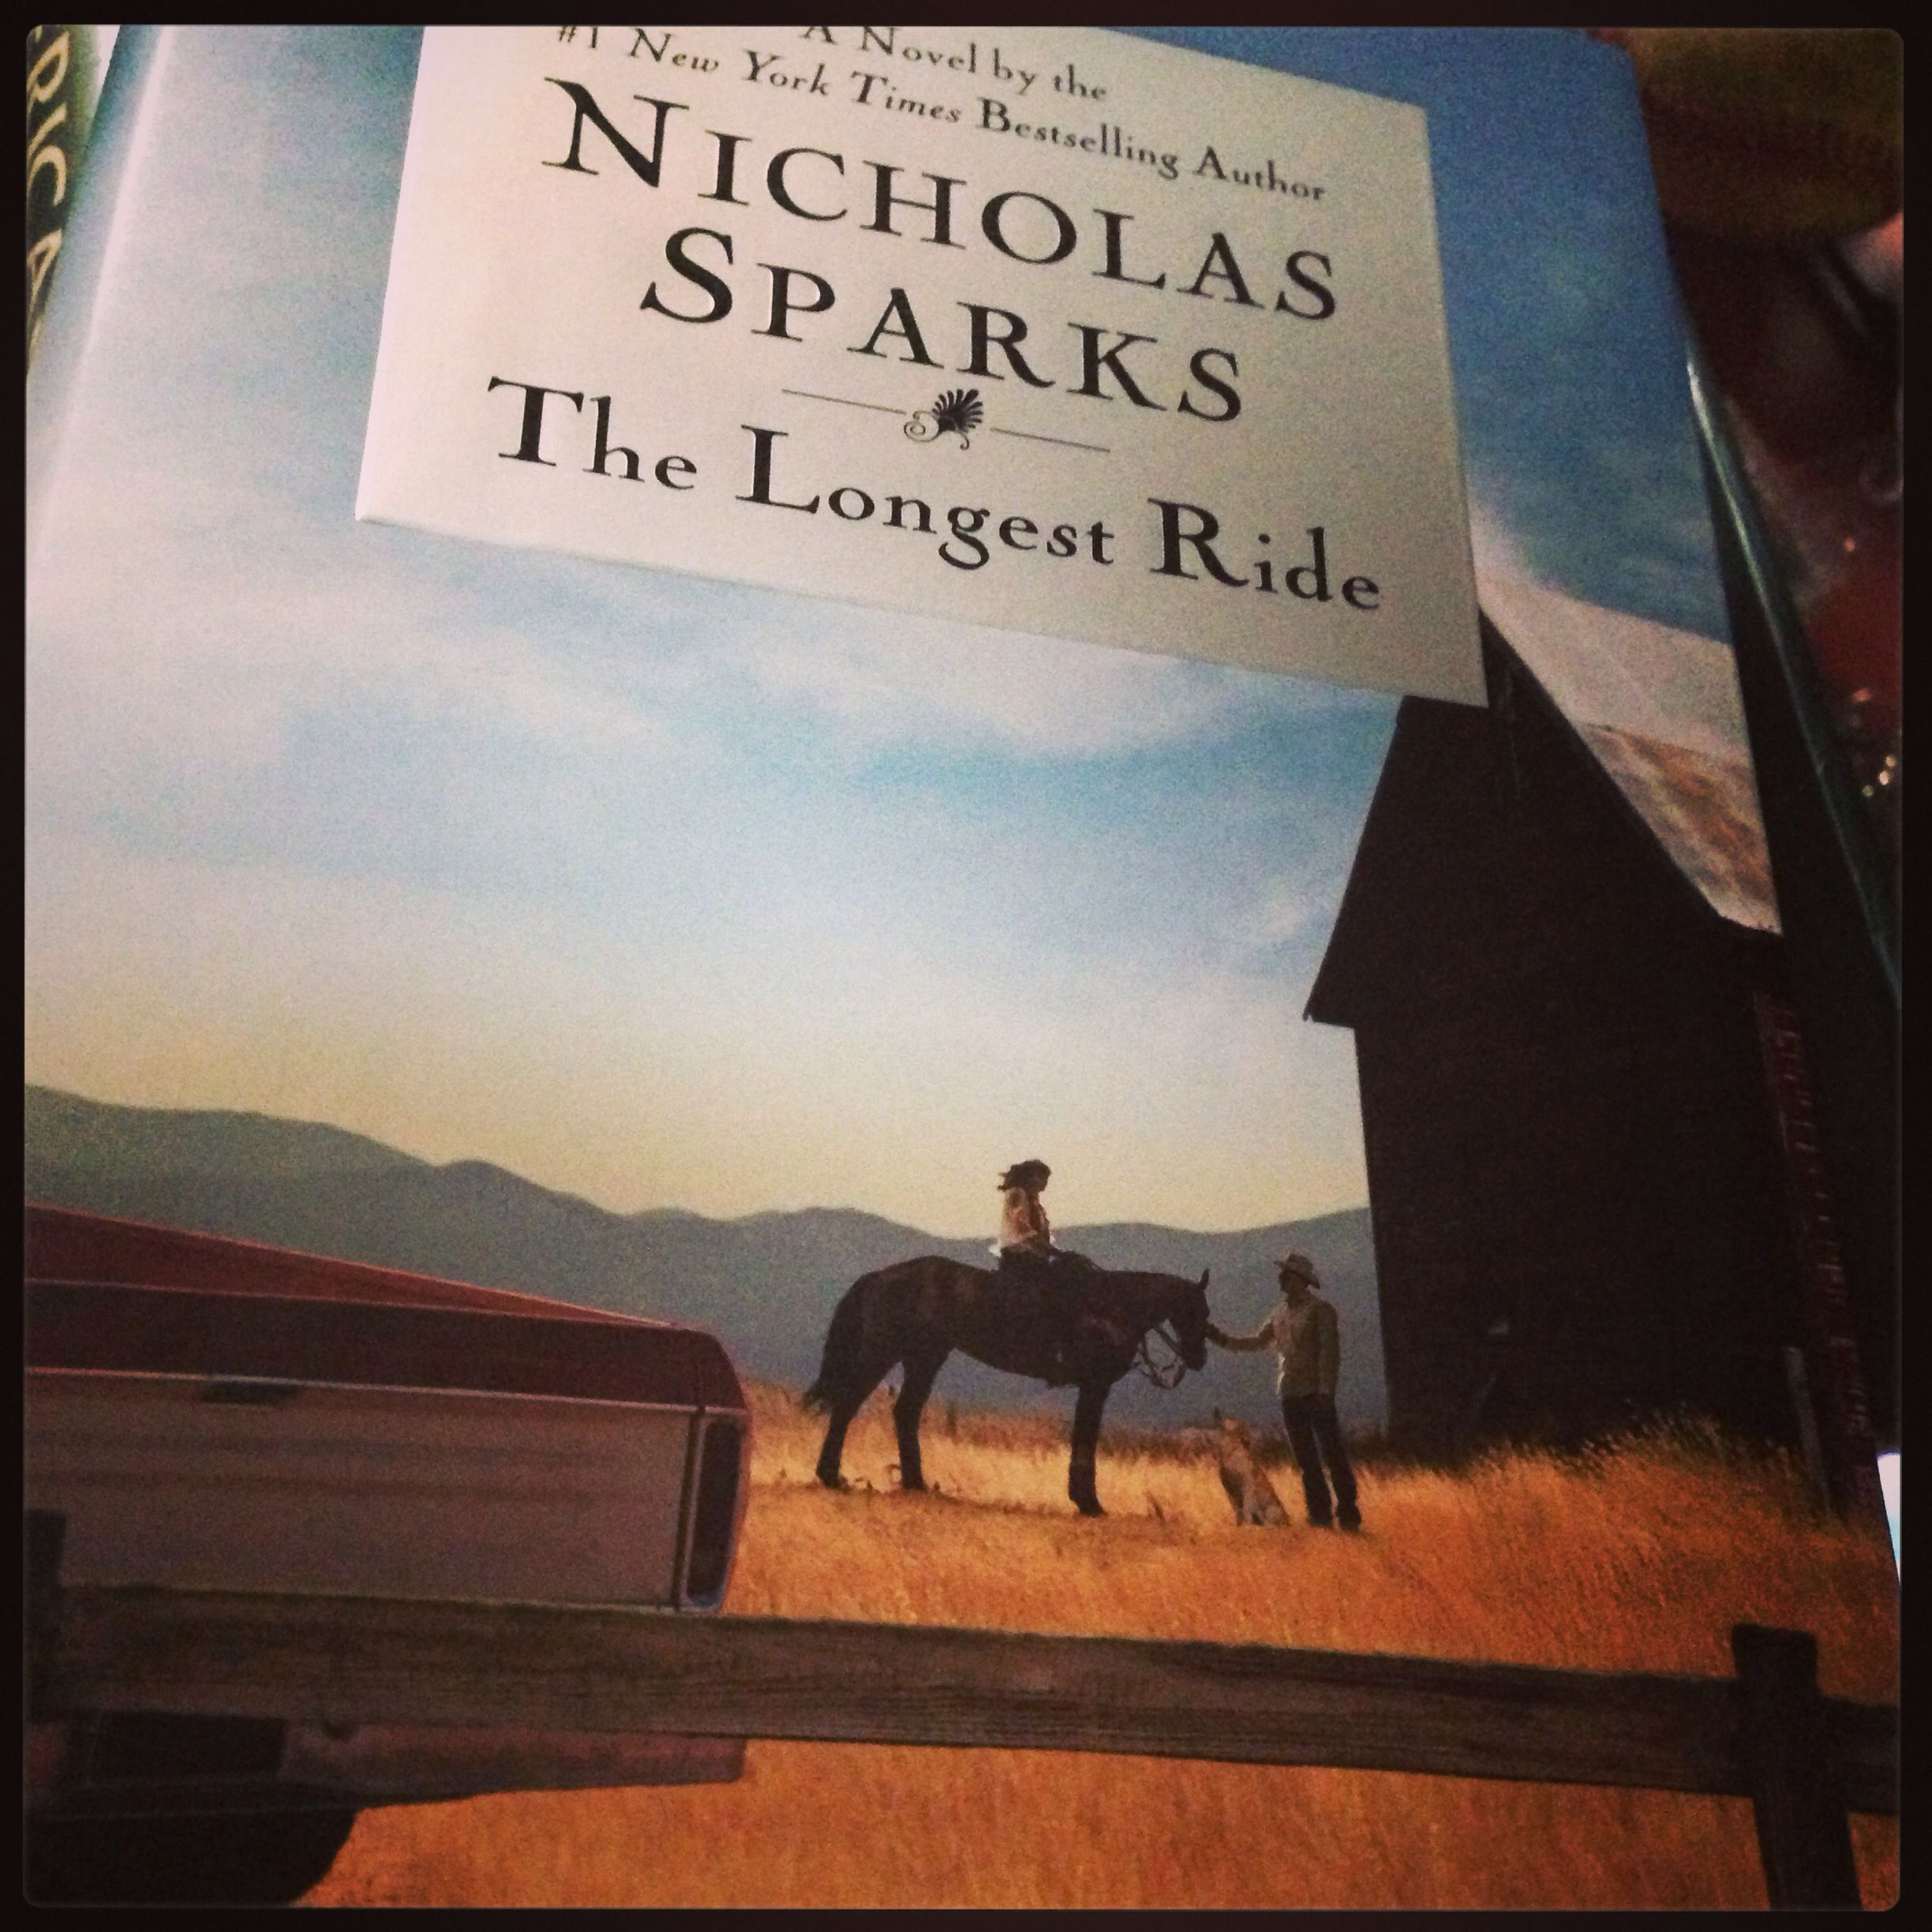 The Longest Ride -Nicholas Sparks <3 One my favorites by him!!